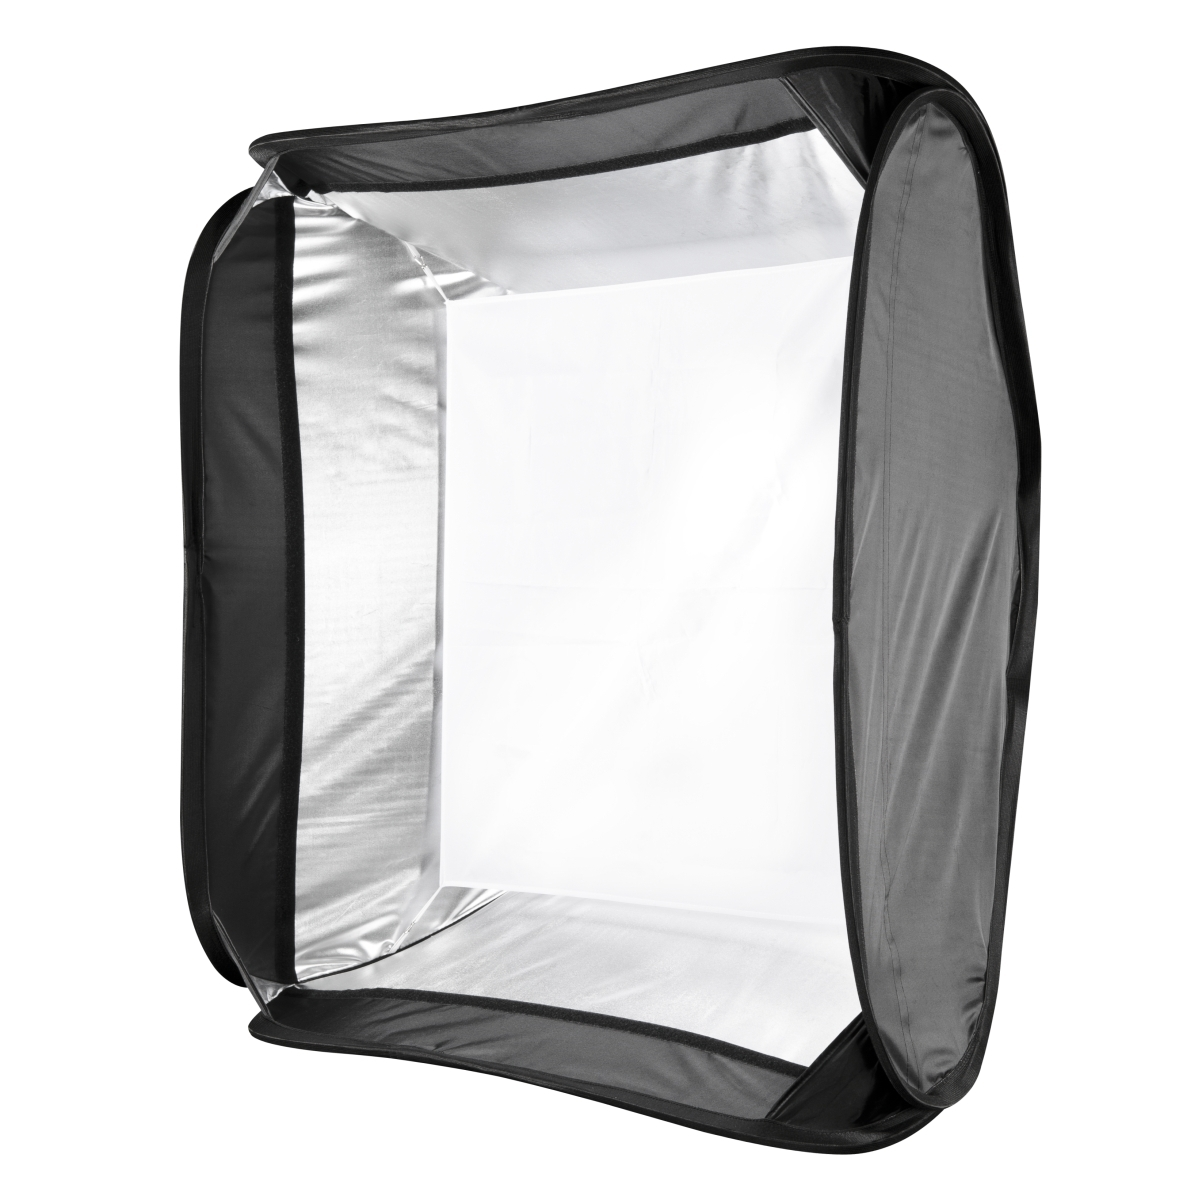 Walimex Magic Softbox 90x90cm für Systemblitz